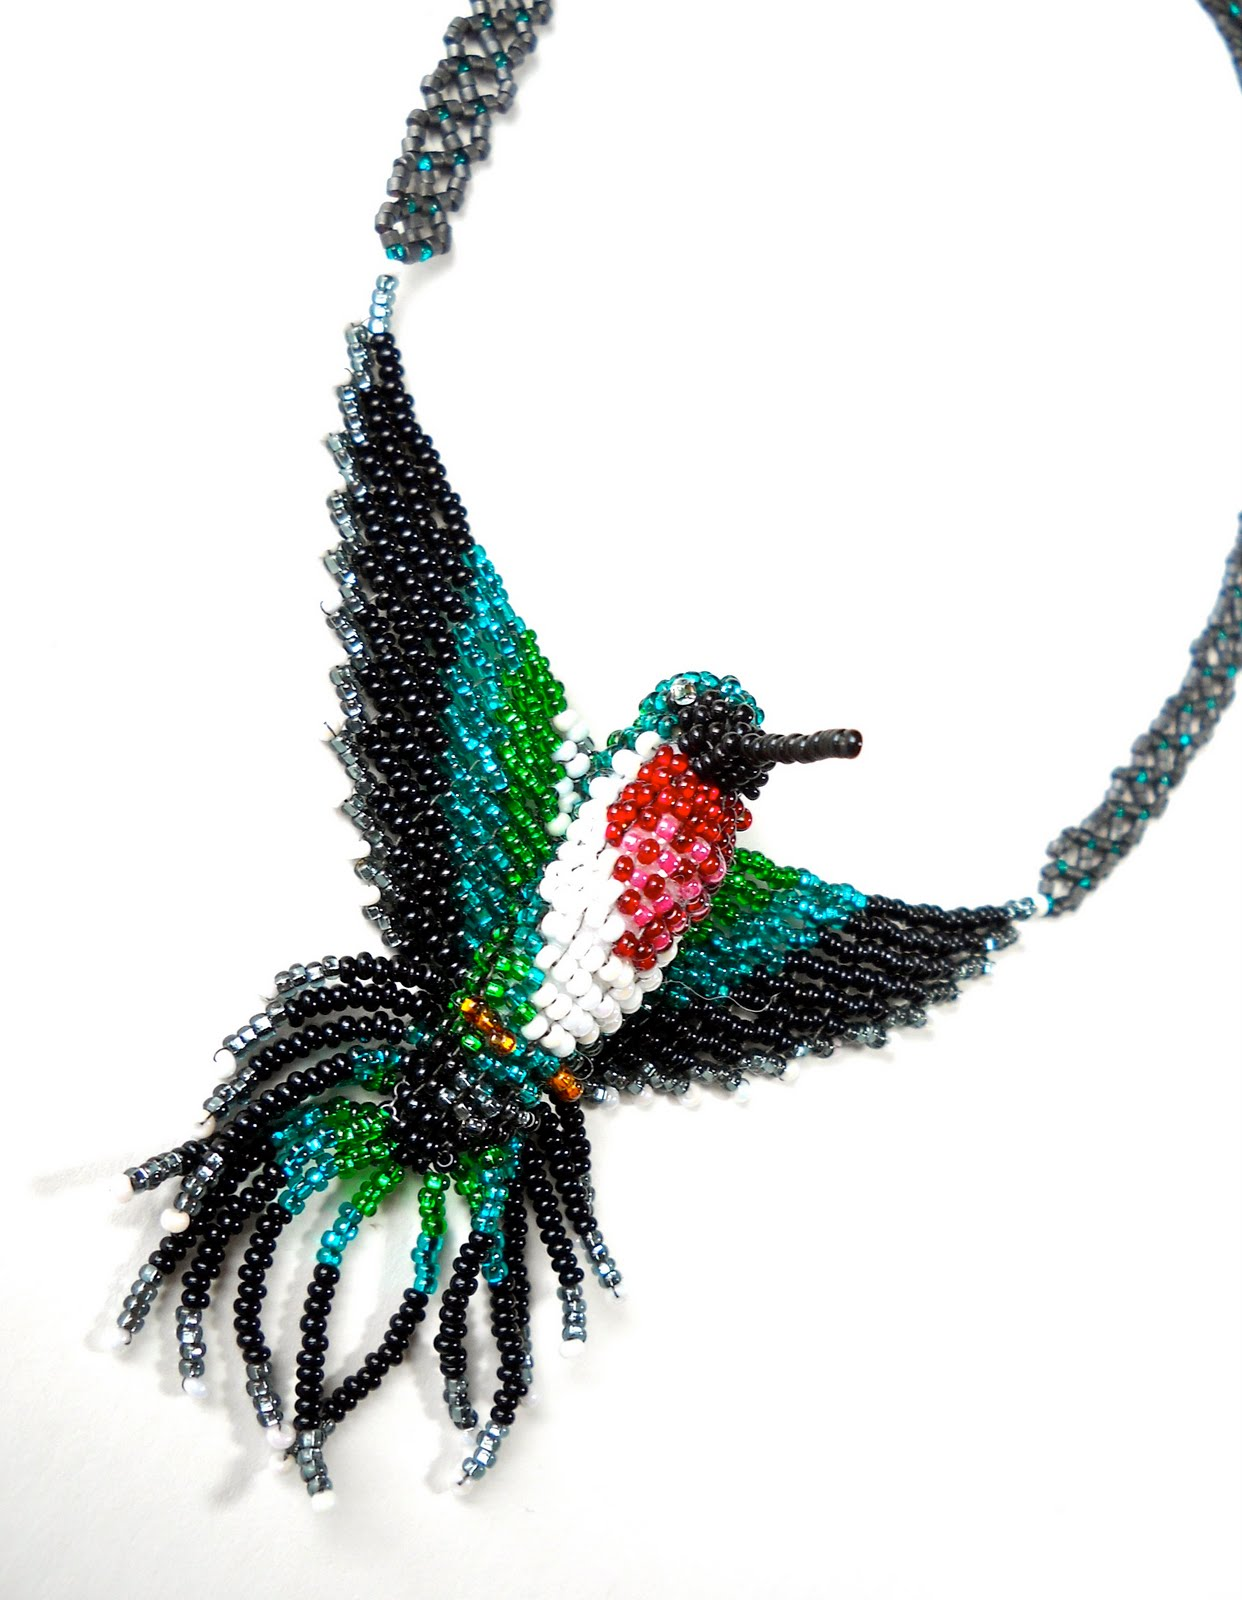 Free Hummingbird Bead Patterns http://sharonerwine.blogspot.com/2010/07/3d-hummingbird.html